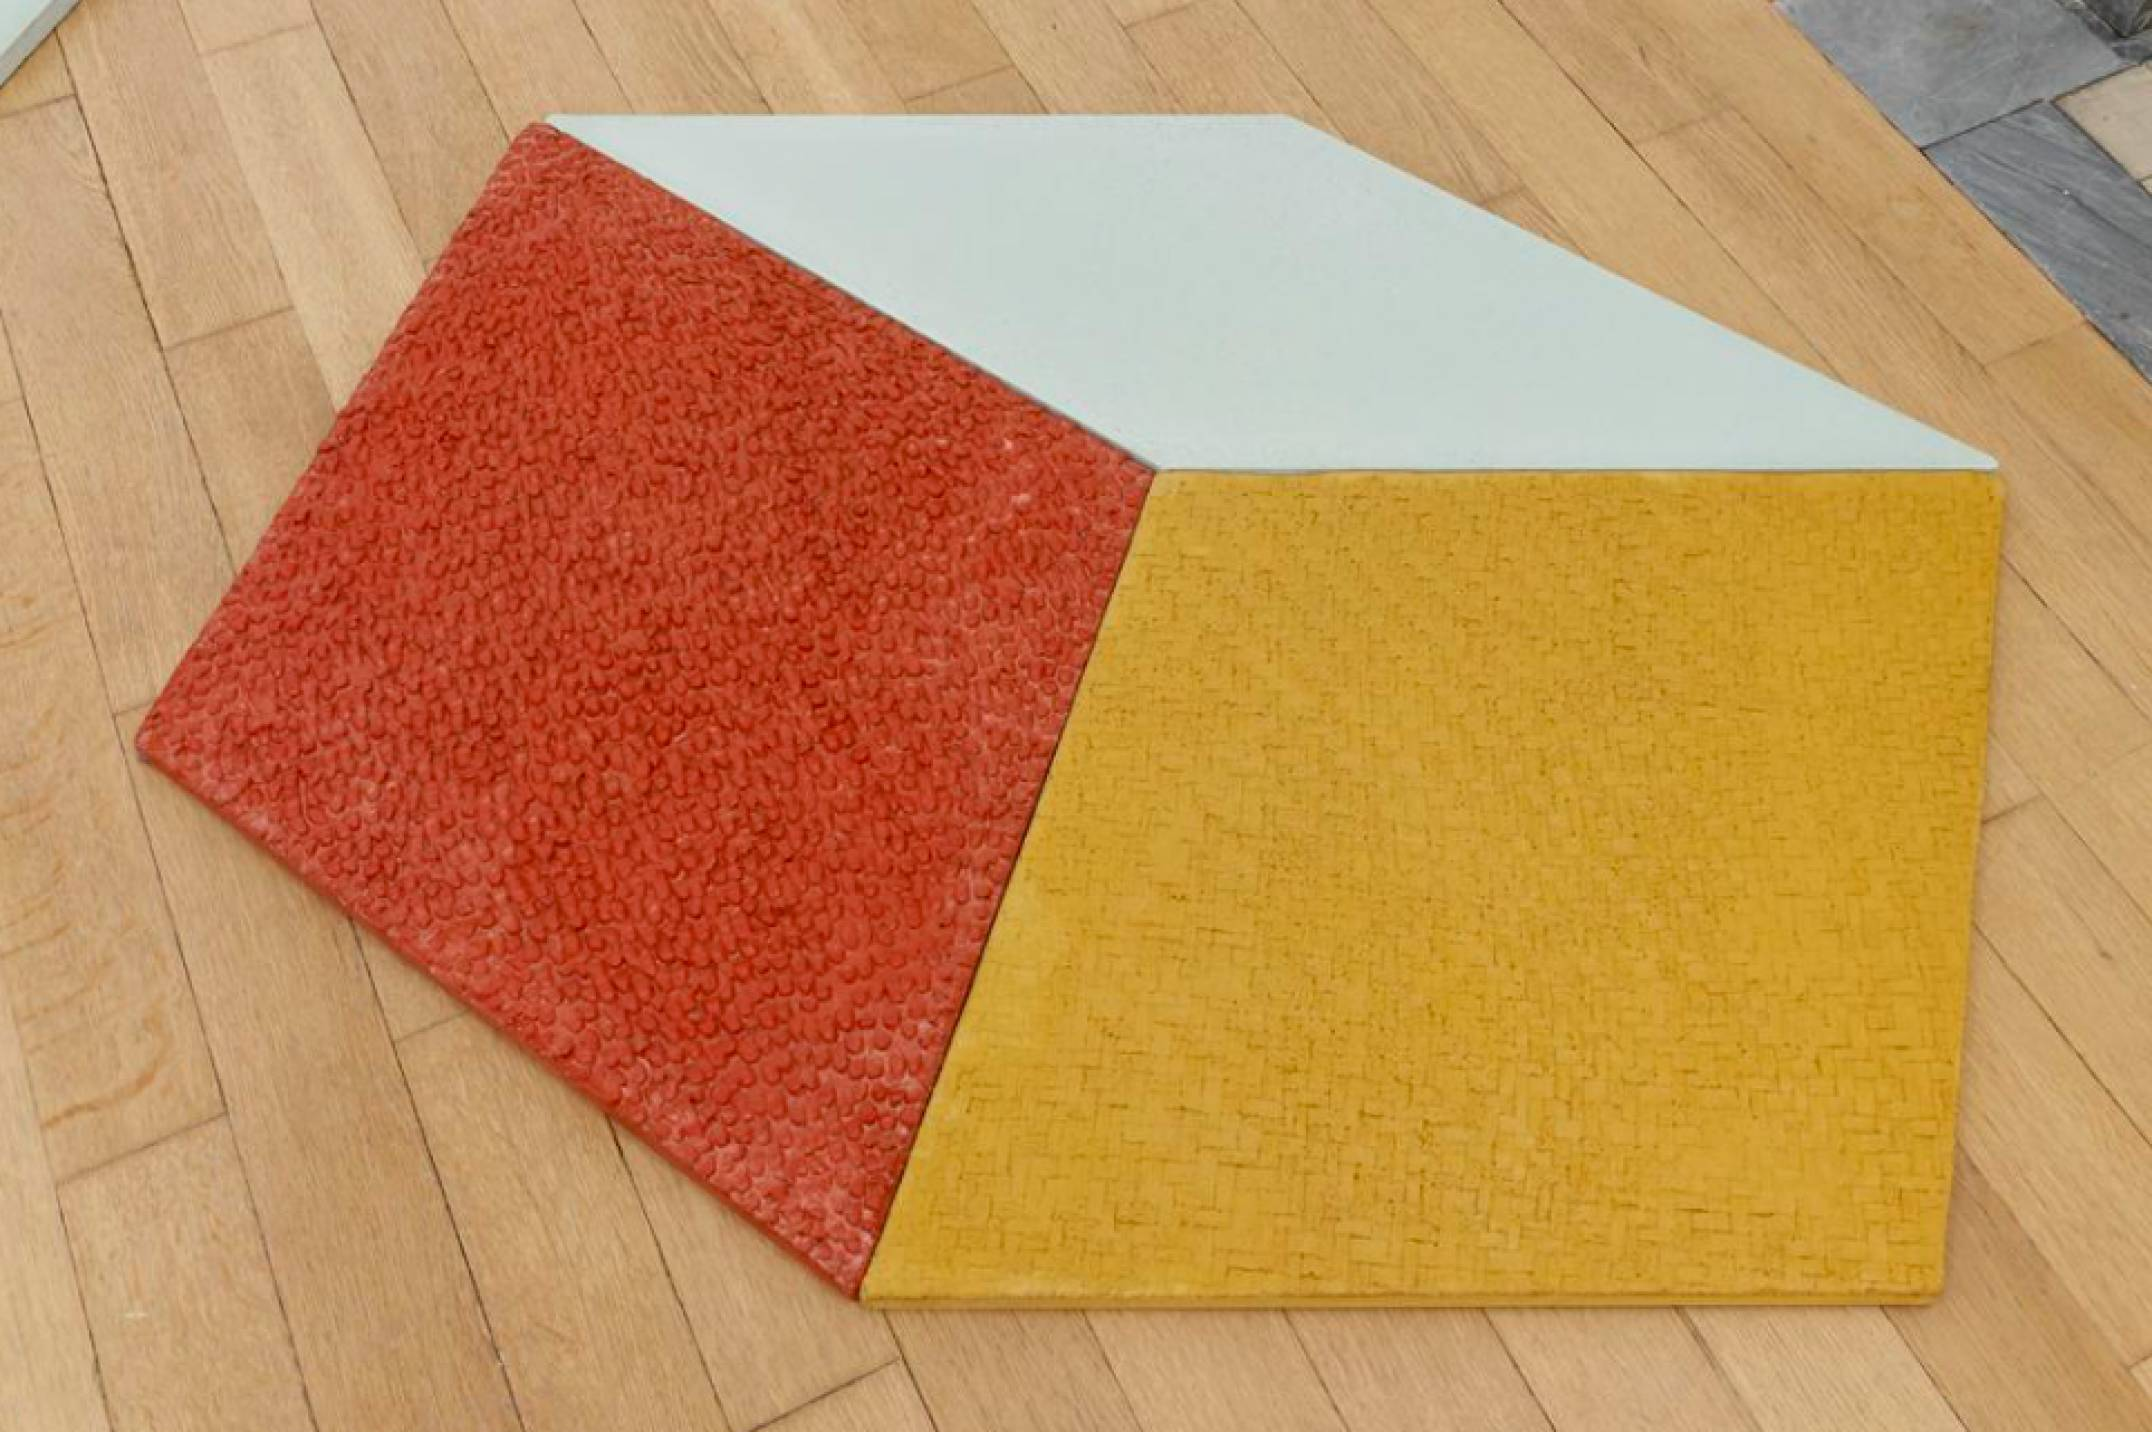 Mariana Castillo Deball, <em>Petate, Xipe, Turquesa</em>, 2017, colored concrete tiles with relief, 97 × 114 cm - Mendes Wood DM